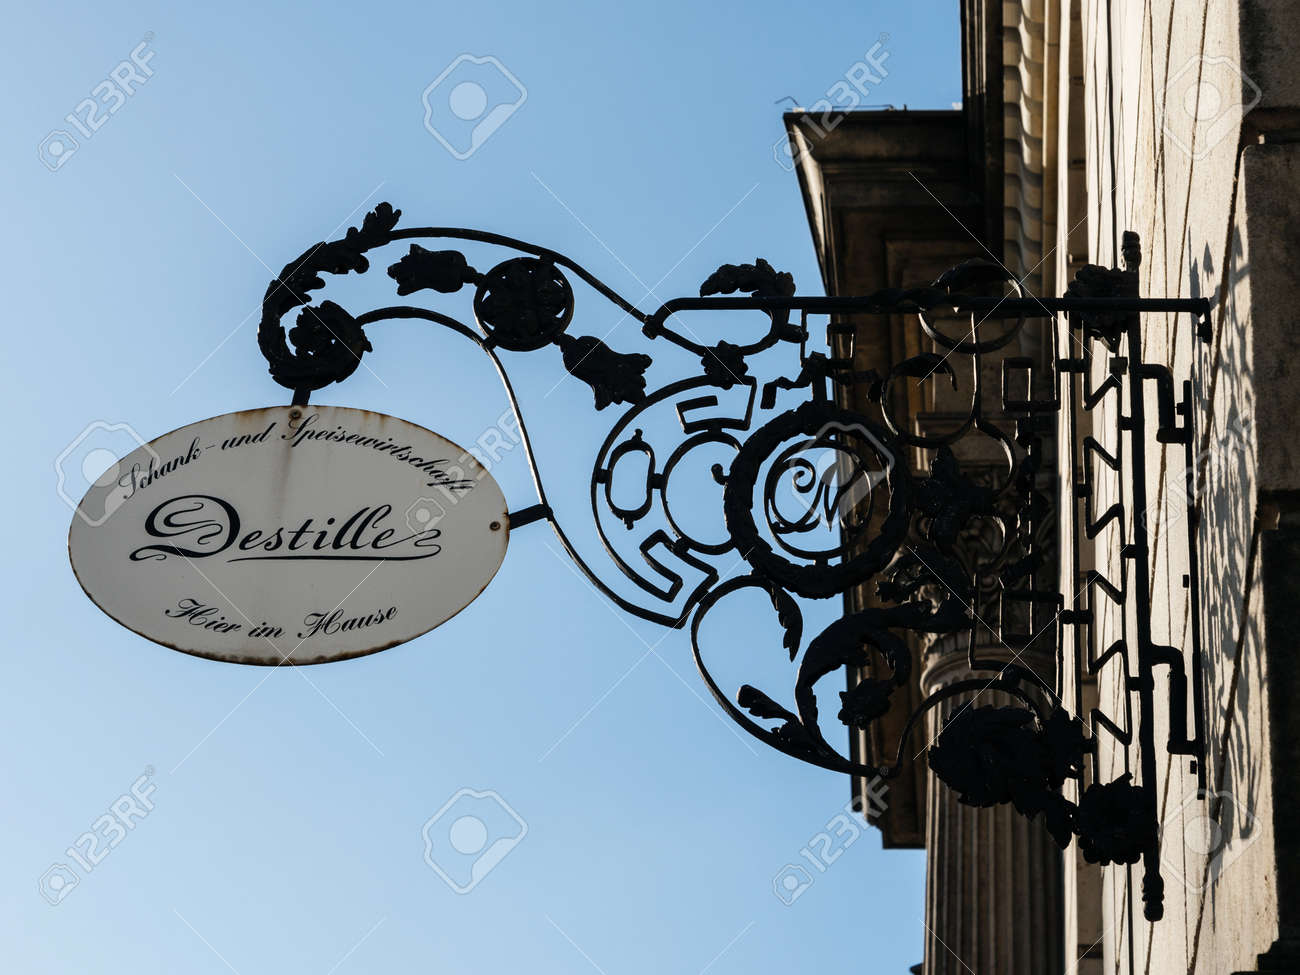 Museum Für Kunst Und Gewerbe Hamburg, Germany - Mar 20, 2018: Destille Restaurant Signage.. Stock Photo, Picture And Royalty Free Image. Image 132491431.